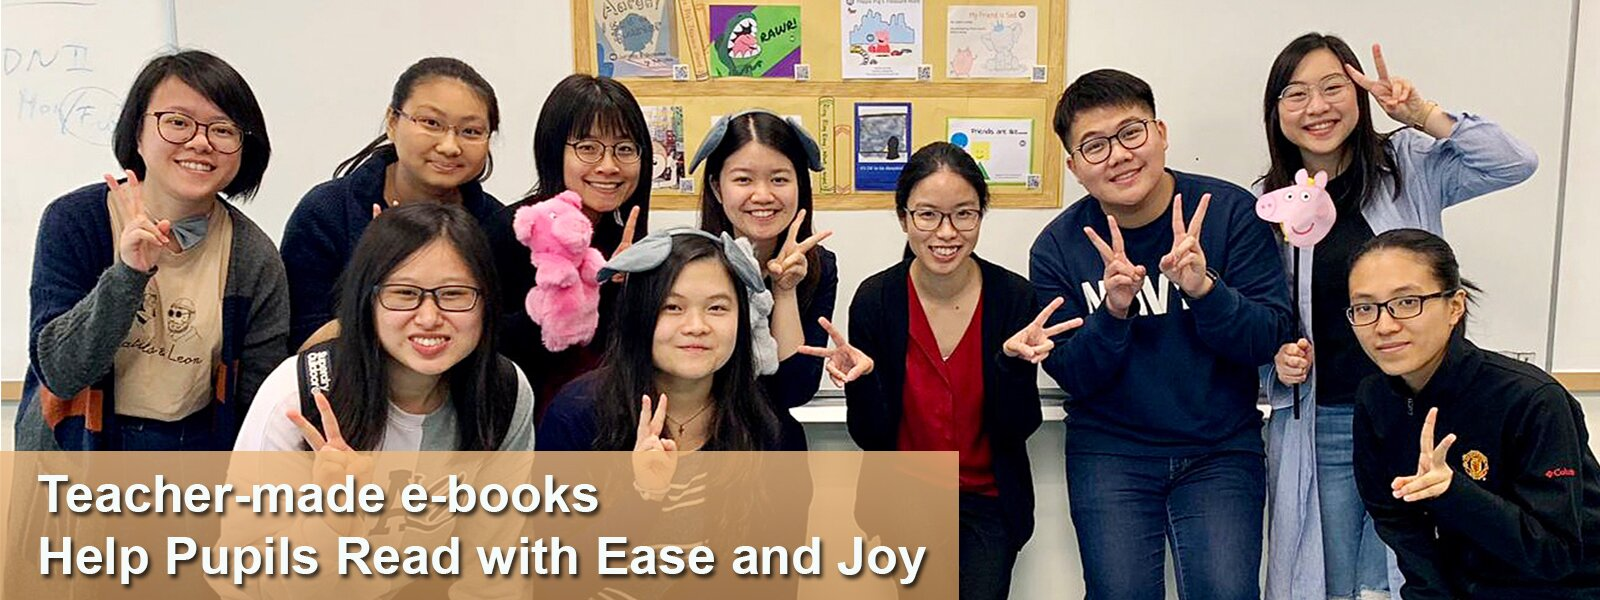 Teacher-made e-books help pupils read with ease and joy